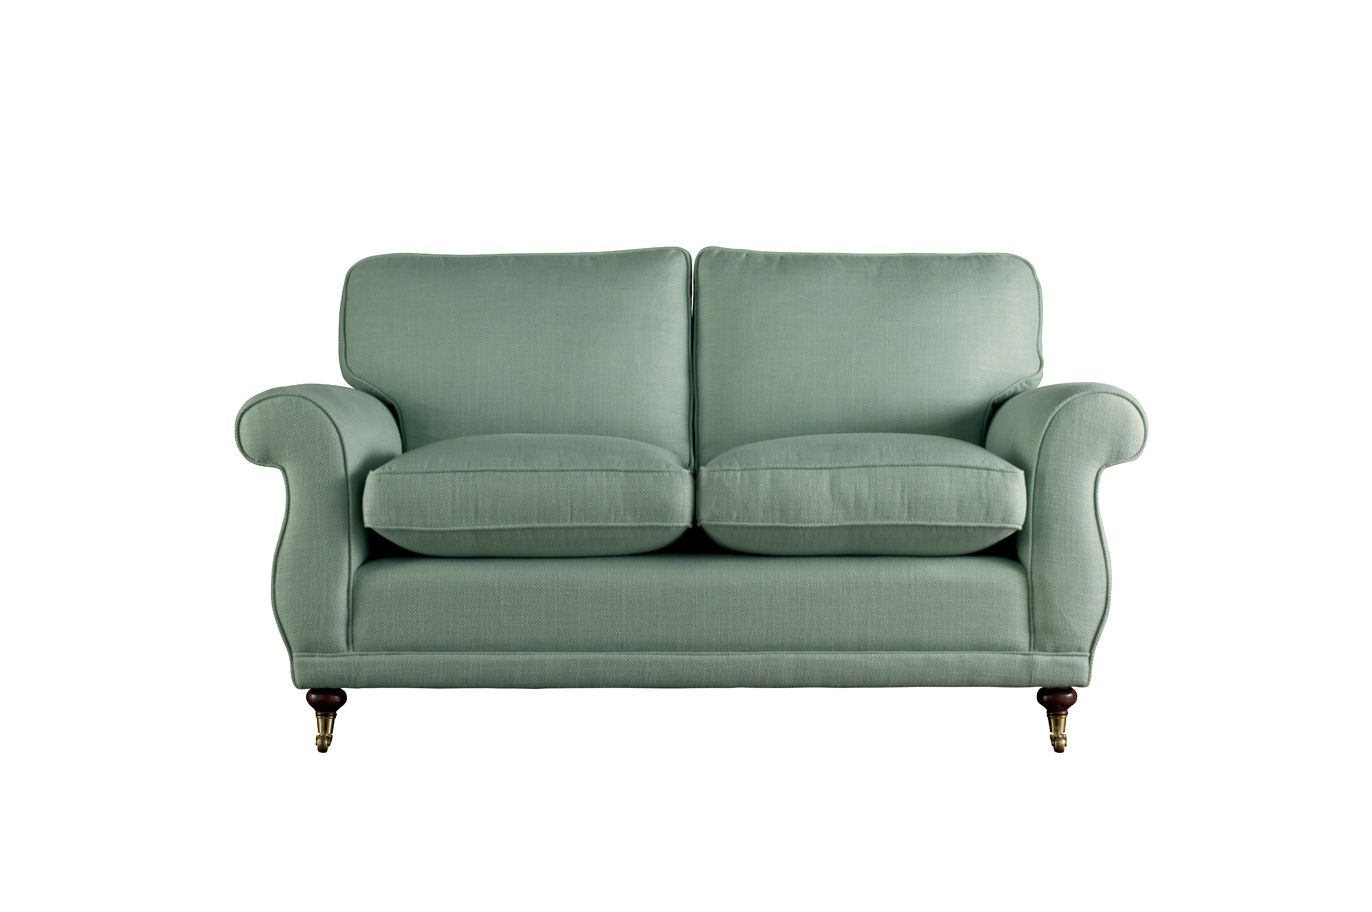 Laura Ashley 2 seater sofa | For the Home | Furniture, 2 ...